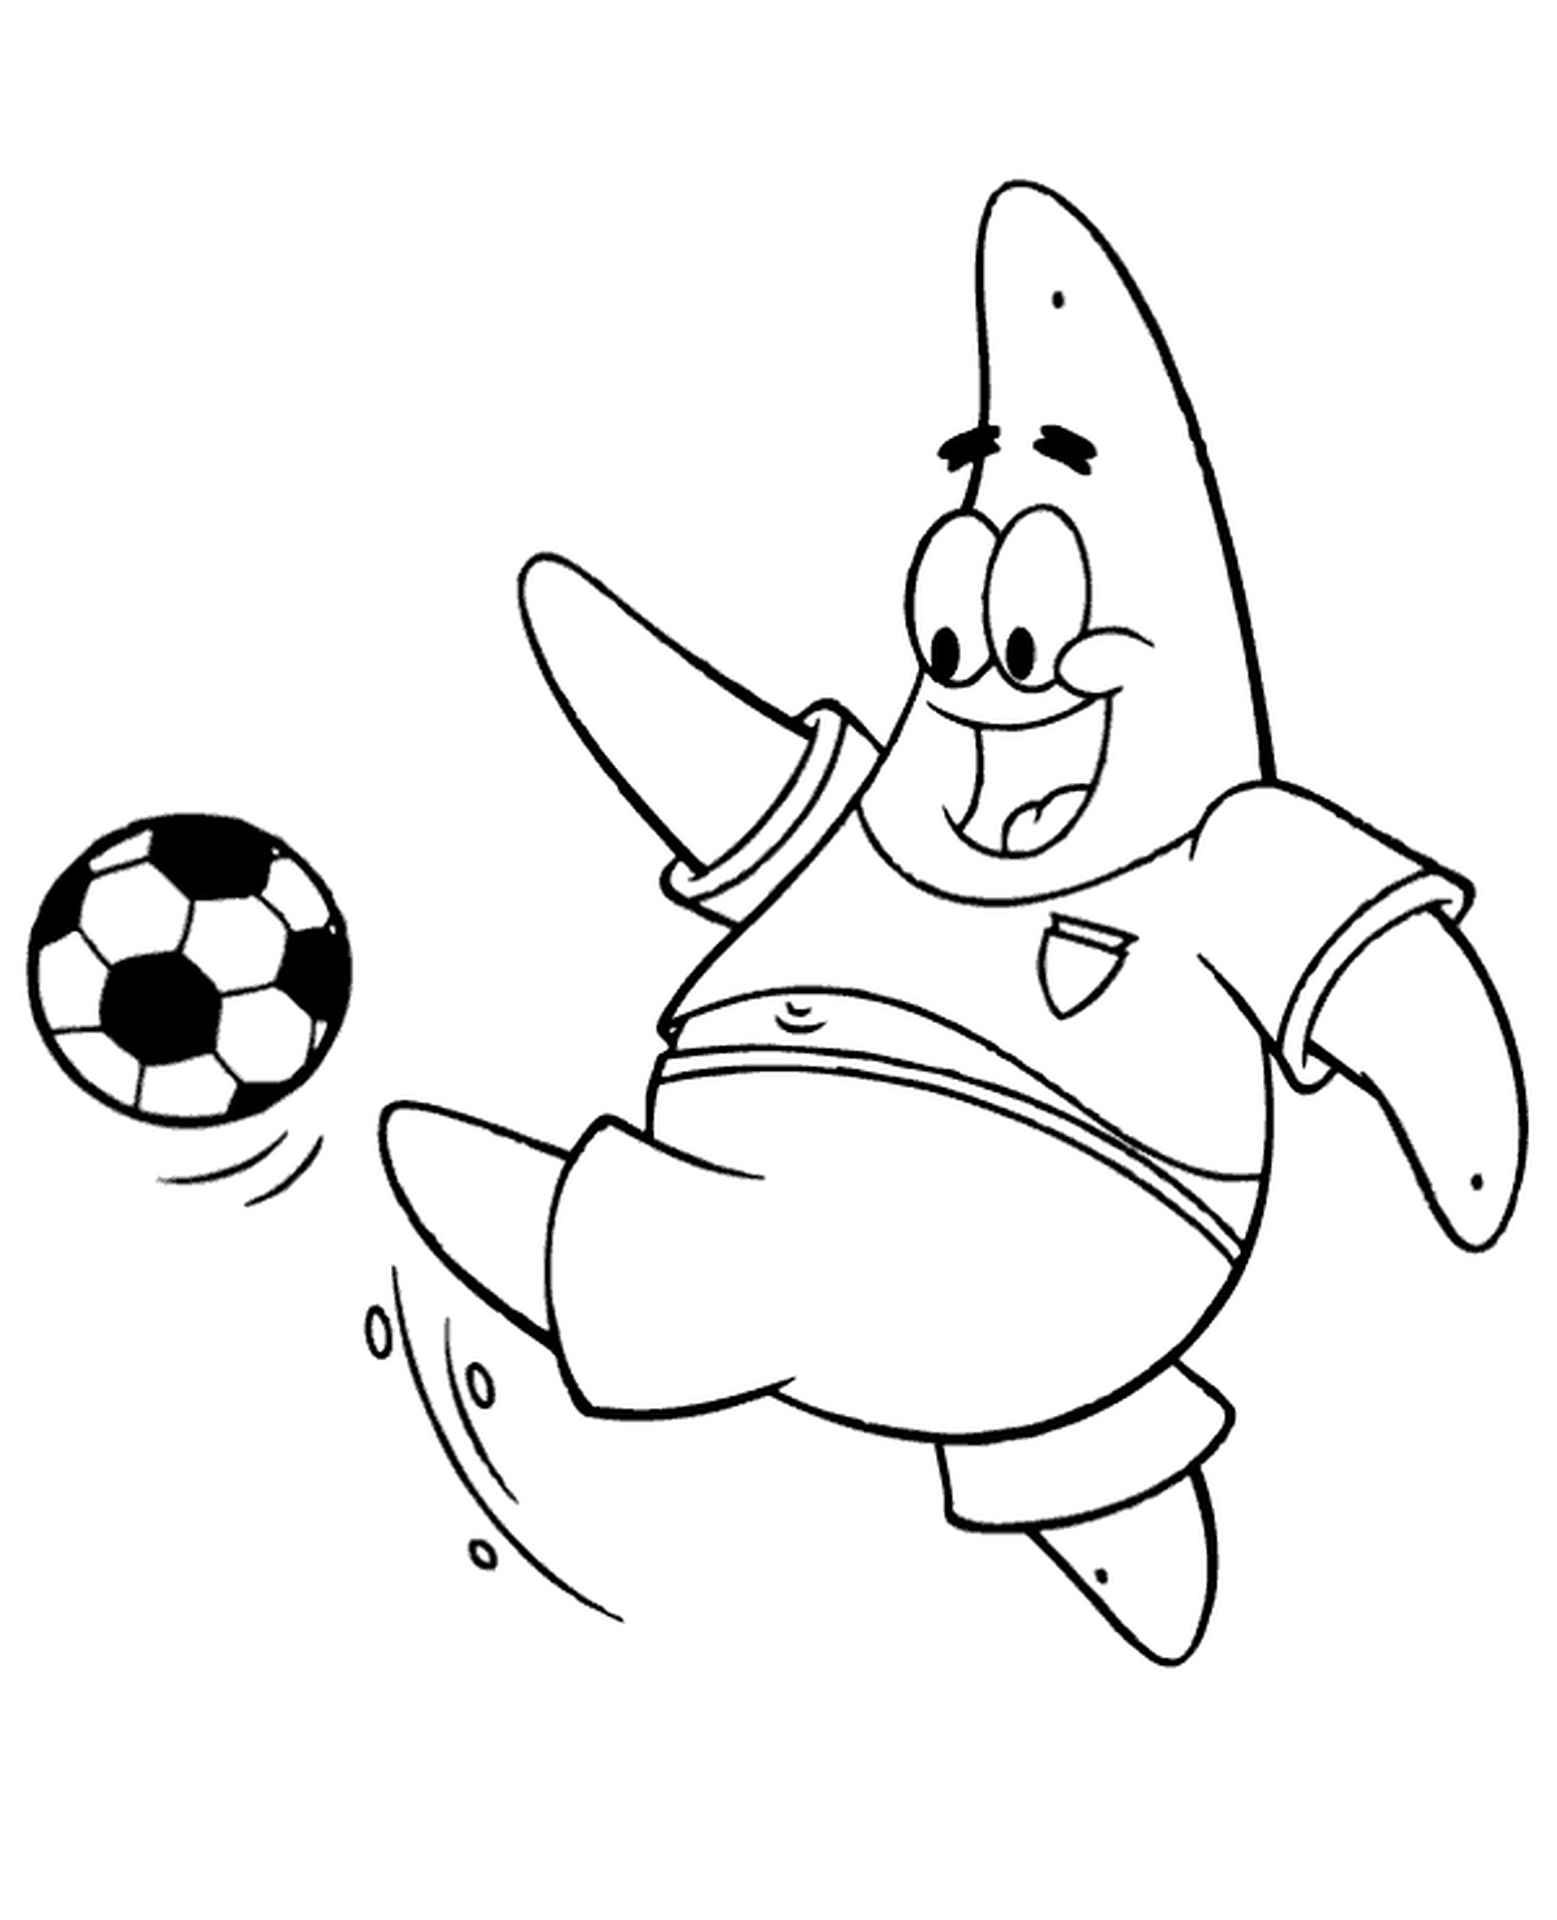 Patrick Plays Football From Spongebob Coloring Page